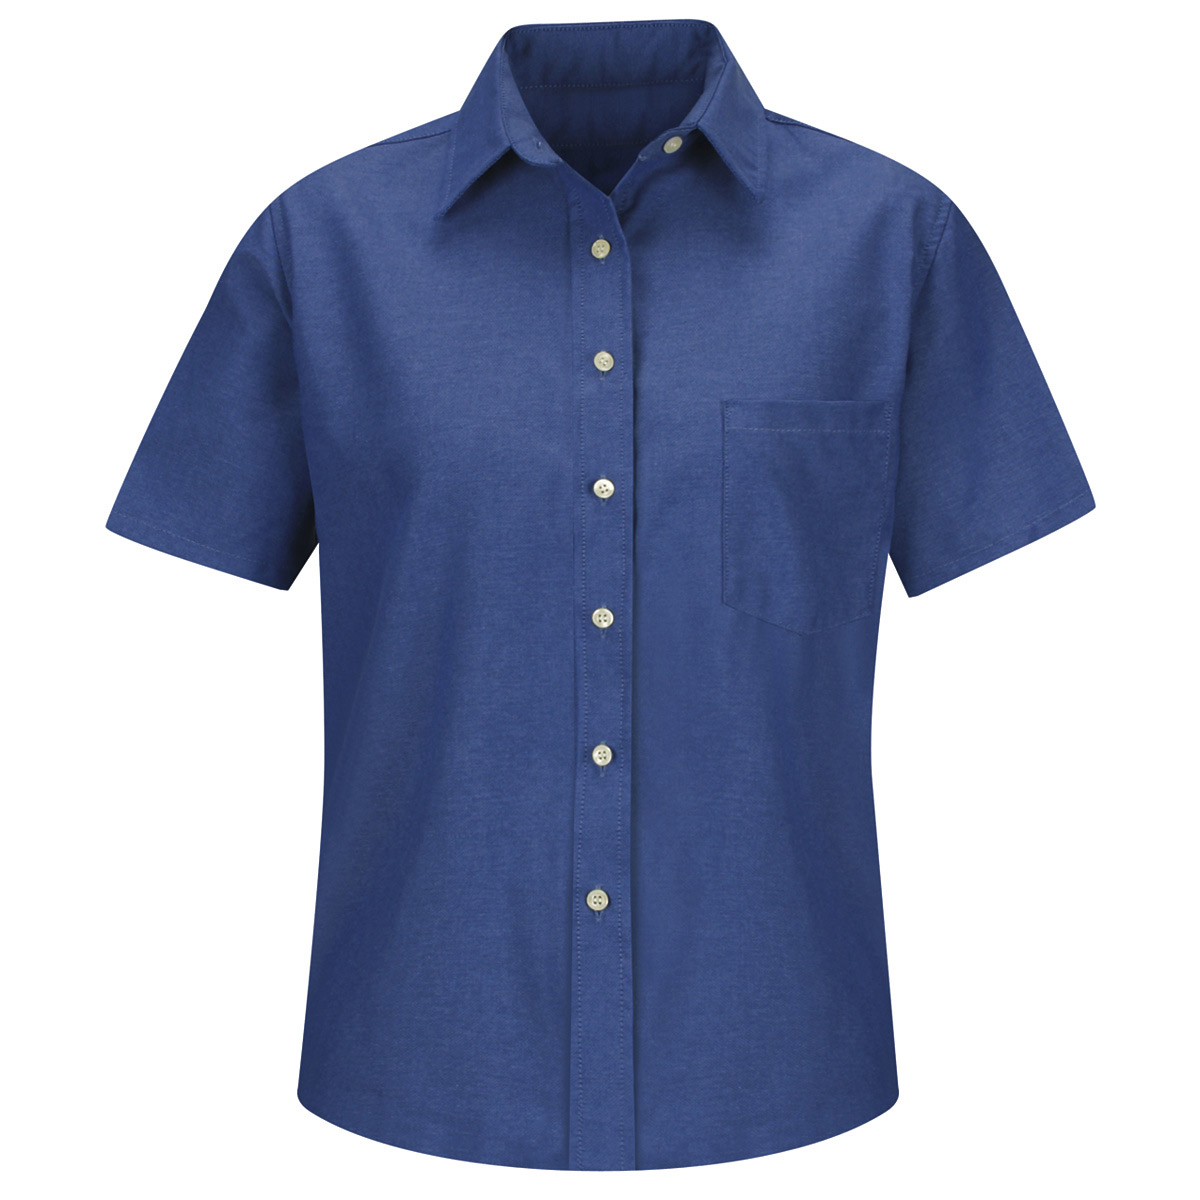 Women's Oxford Dress Shirt